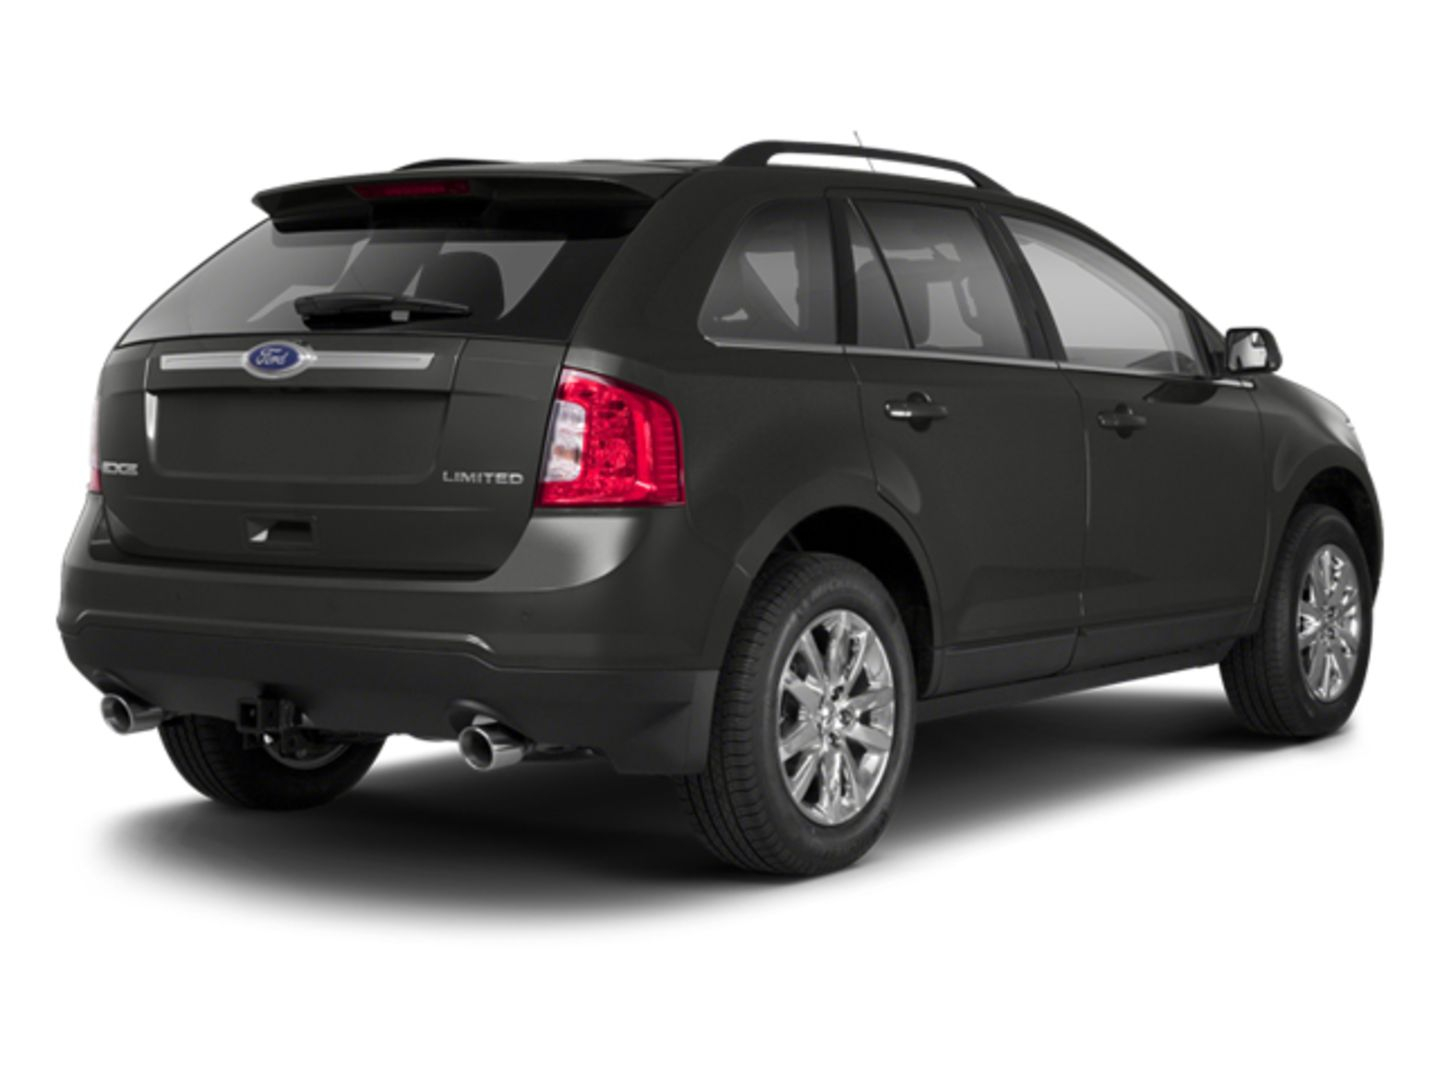 2013 Ford Edge Limited for sale in Spruce Grove, Alberta